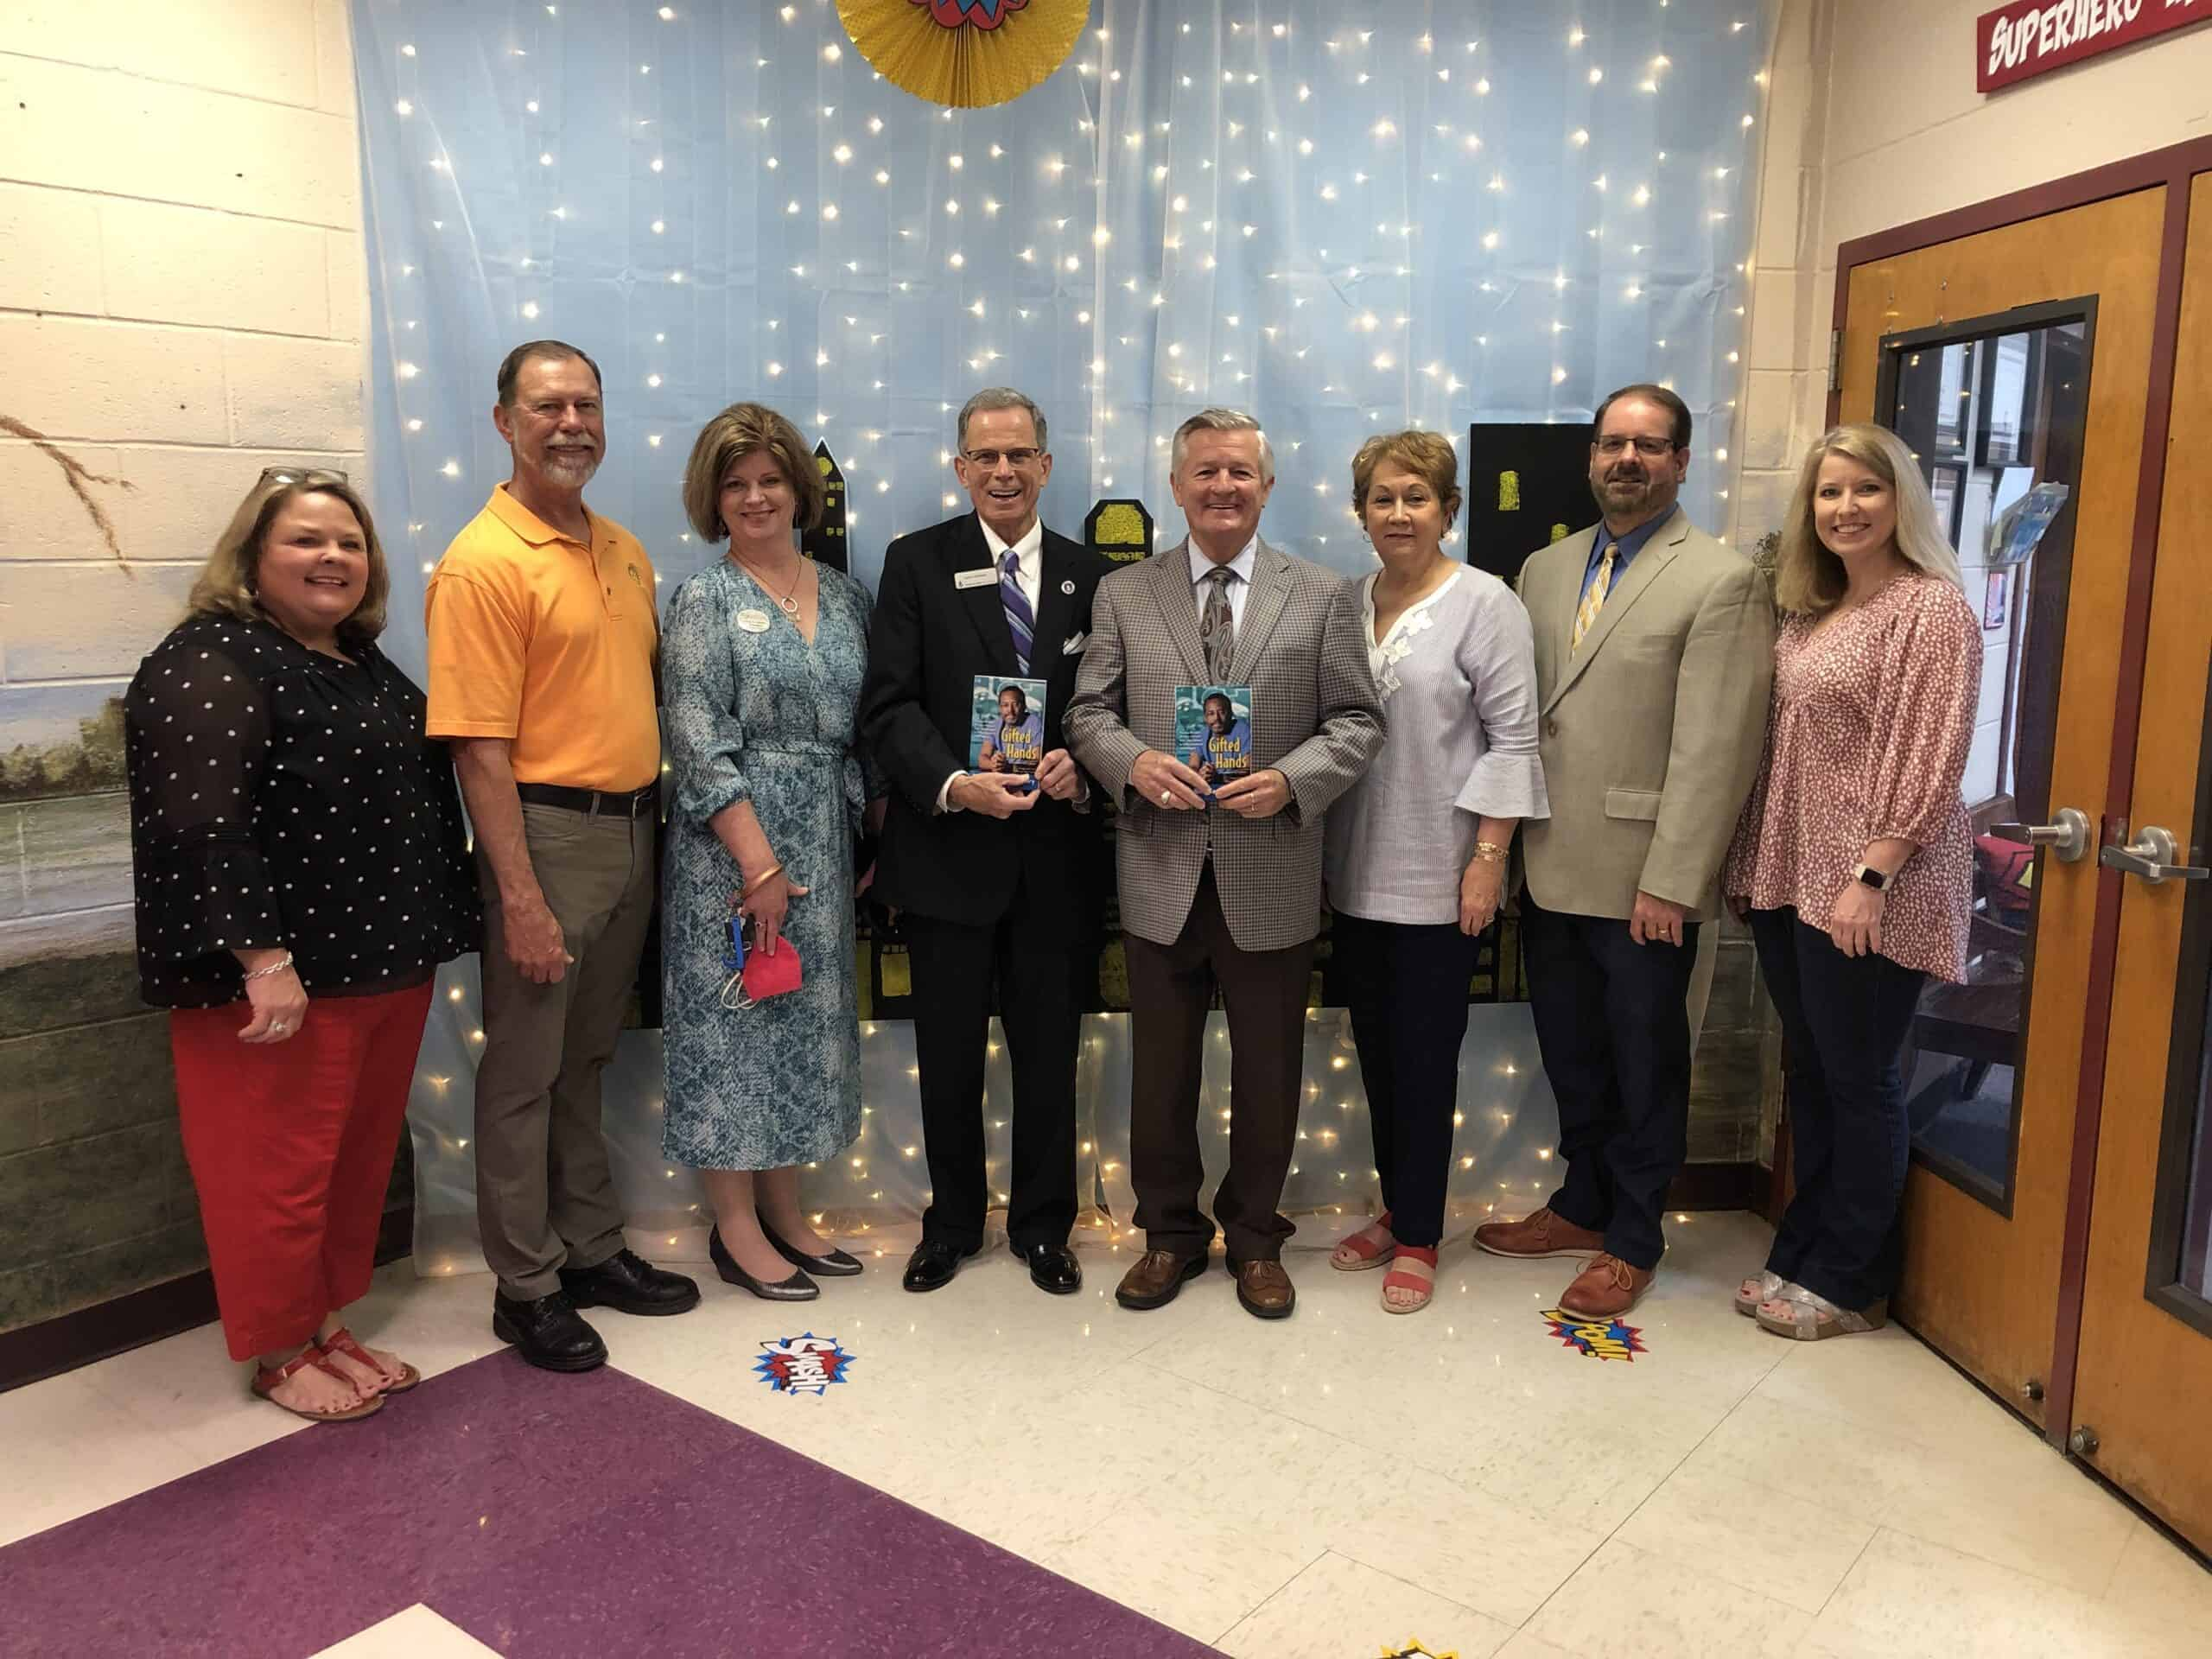 Members of OFTC, the Dublin and Cochran Rotary Clubs, Bleckley County Superintendent, and Bleckley County Elementary School Principal and Assistant Principal gathered for a photo prior to handing out the book Gifted Hands to 180 fifth grade students at Bleckley County Elementary School.